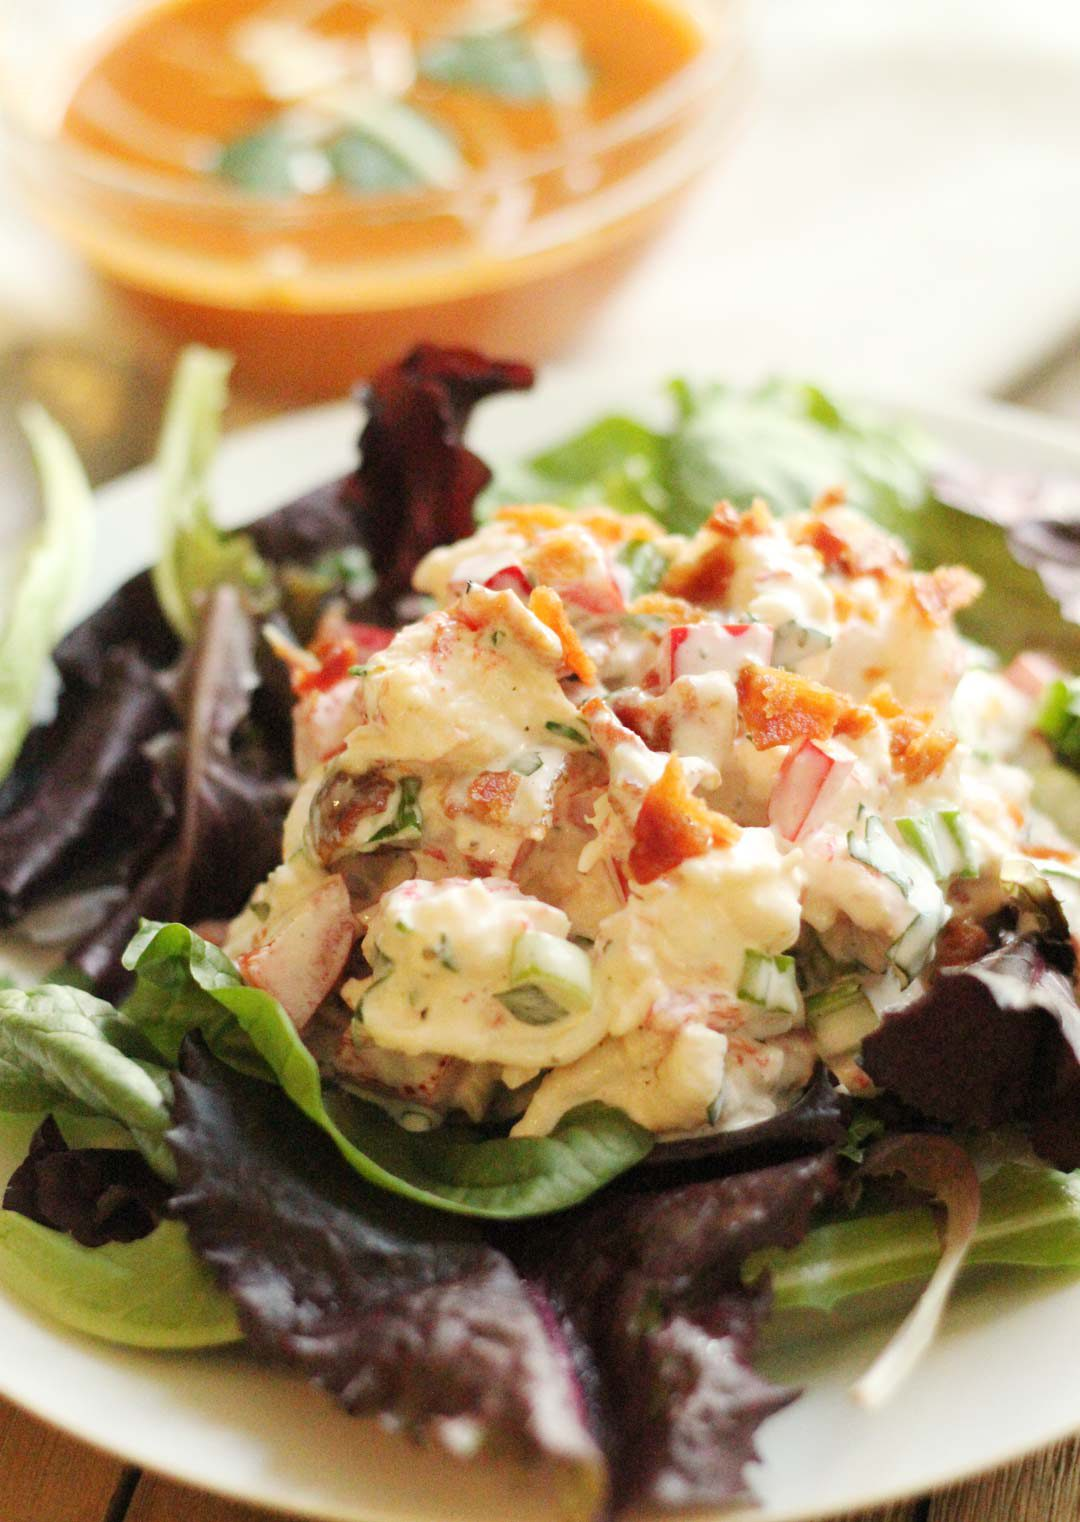 Creamy Lobster Salad | Gutsy Gluten Free Gal - Delicious food without the gluten